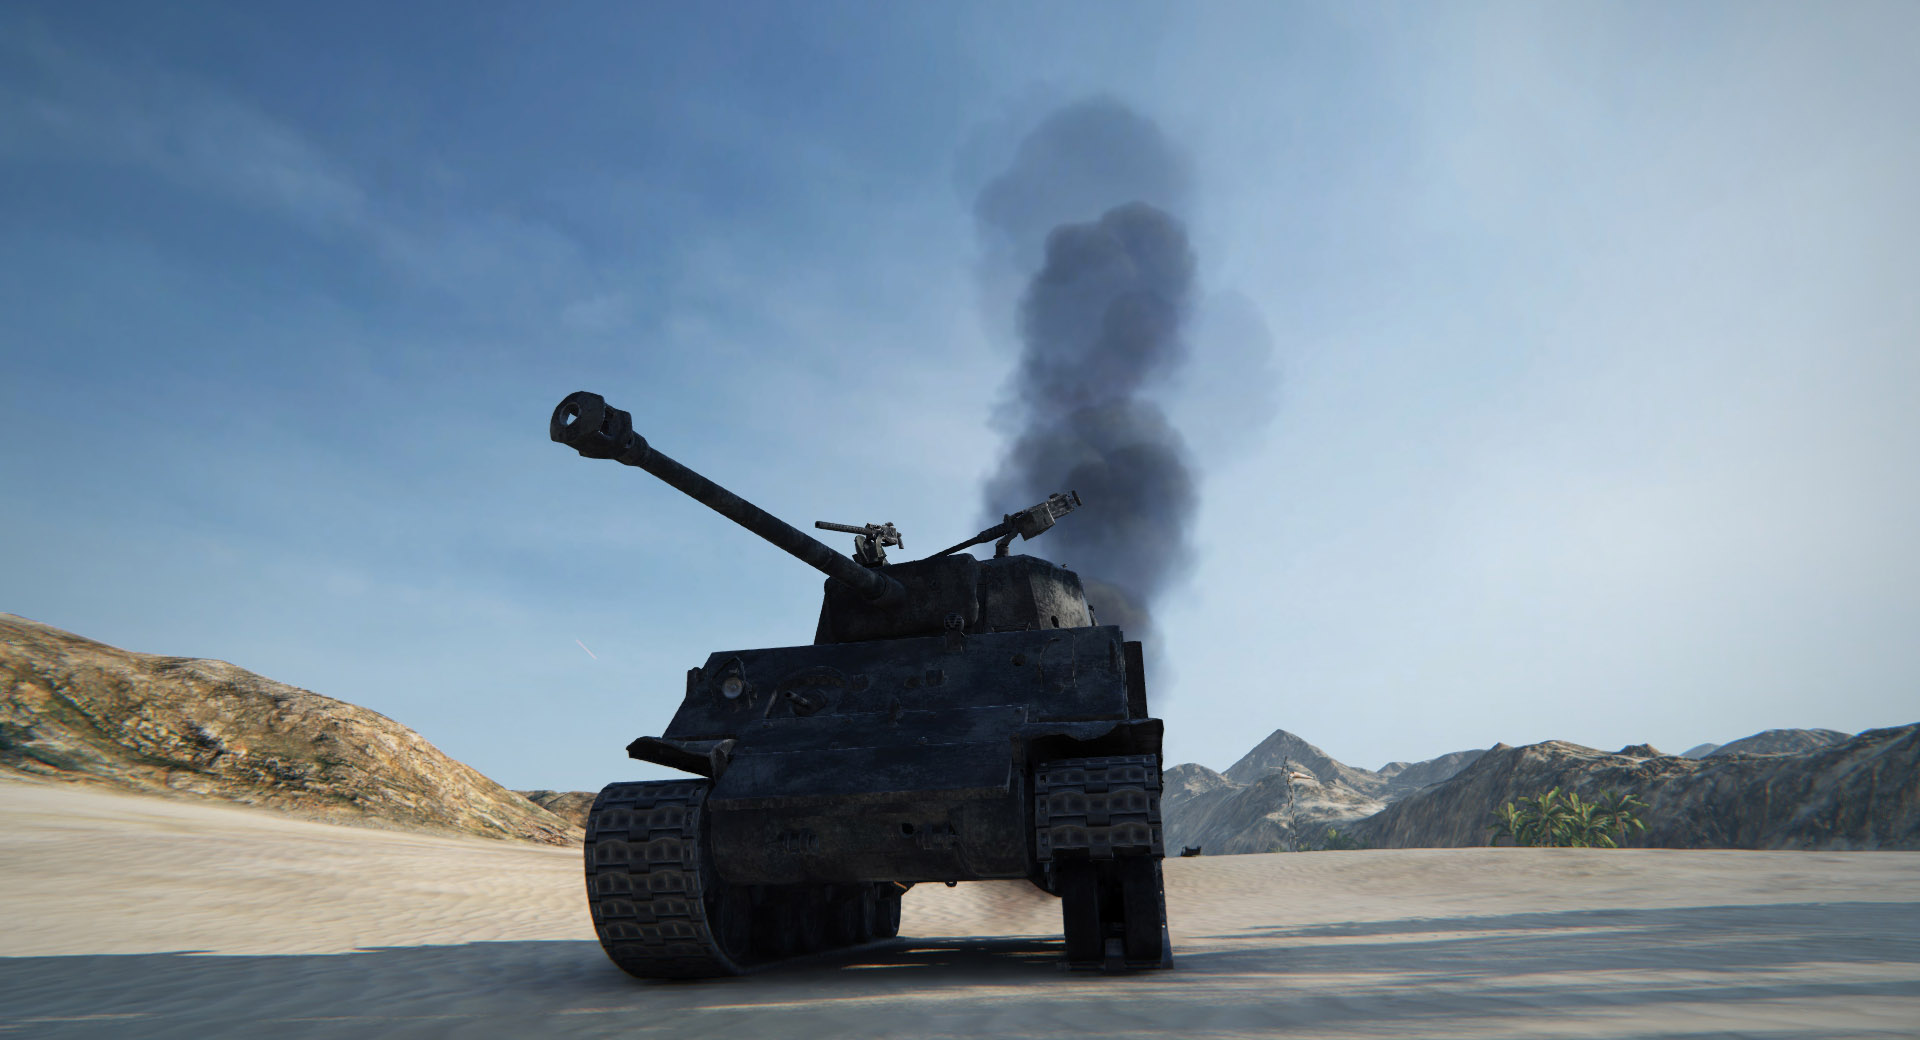 Some tanks, especially those using Premium shells, can still penetrate your armor if you're not careful.